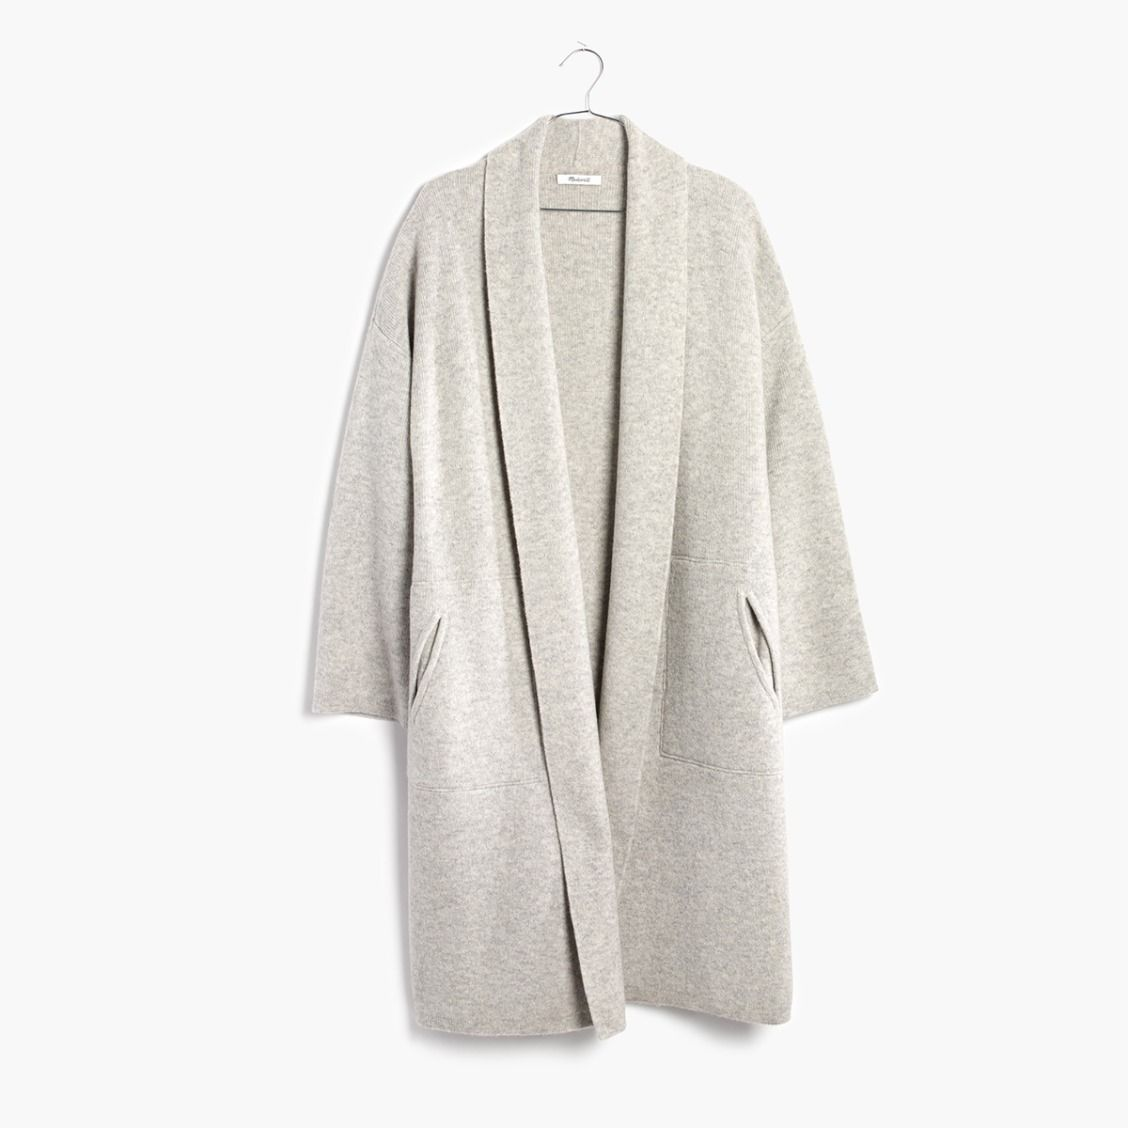 madewell rivington sweater-coat. | the gift well guide / one stop ...